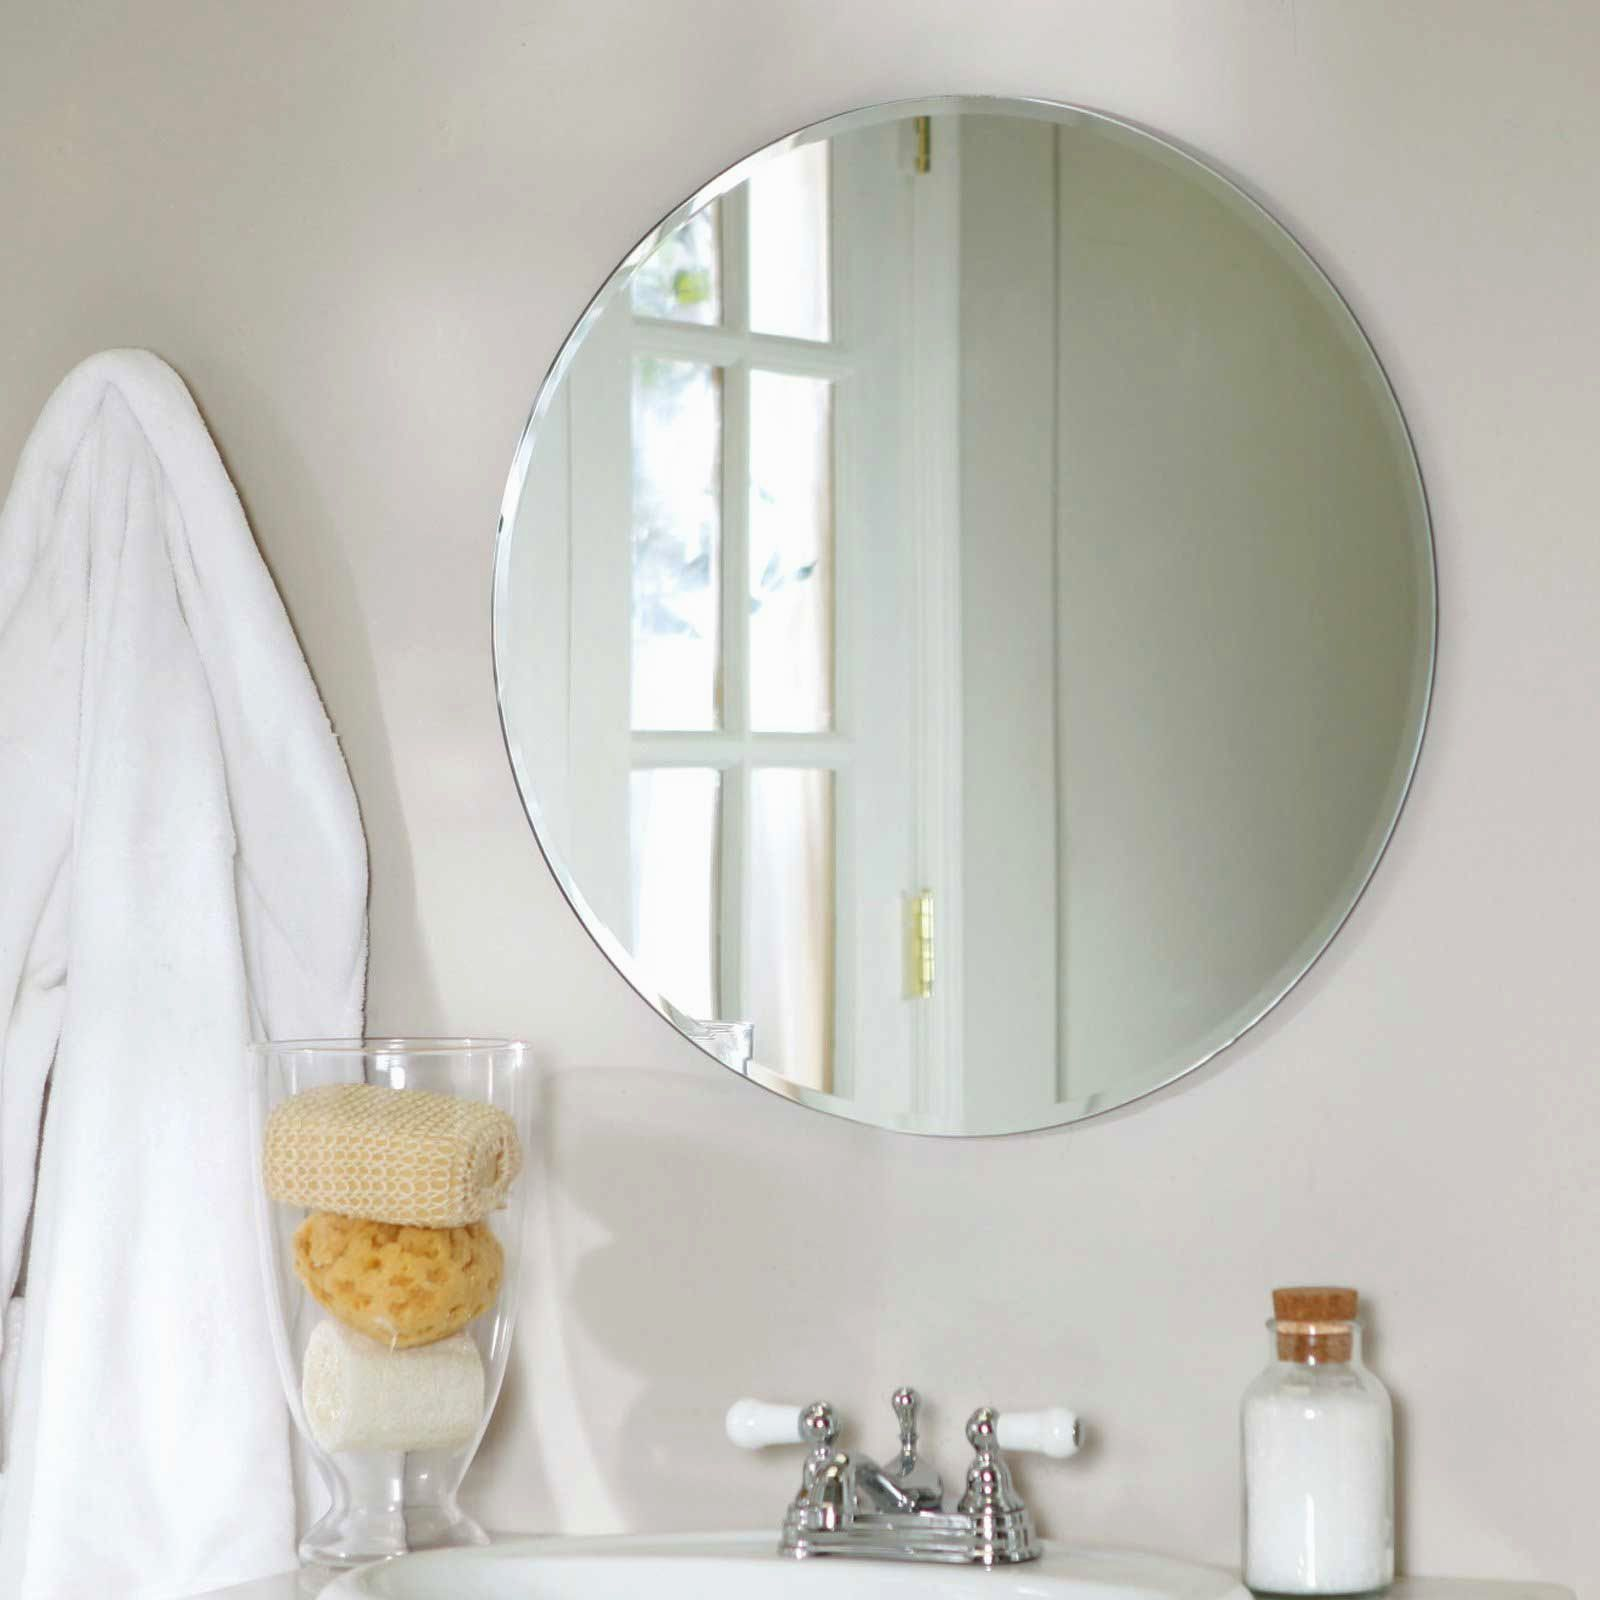 best of framed bathroom mirrors decoration-Stylish Framed Bathroom Mirrors Picture